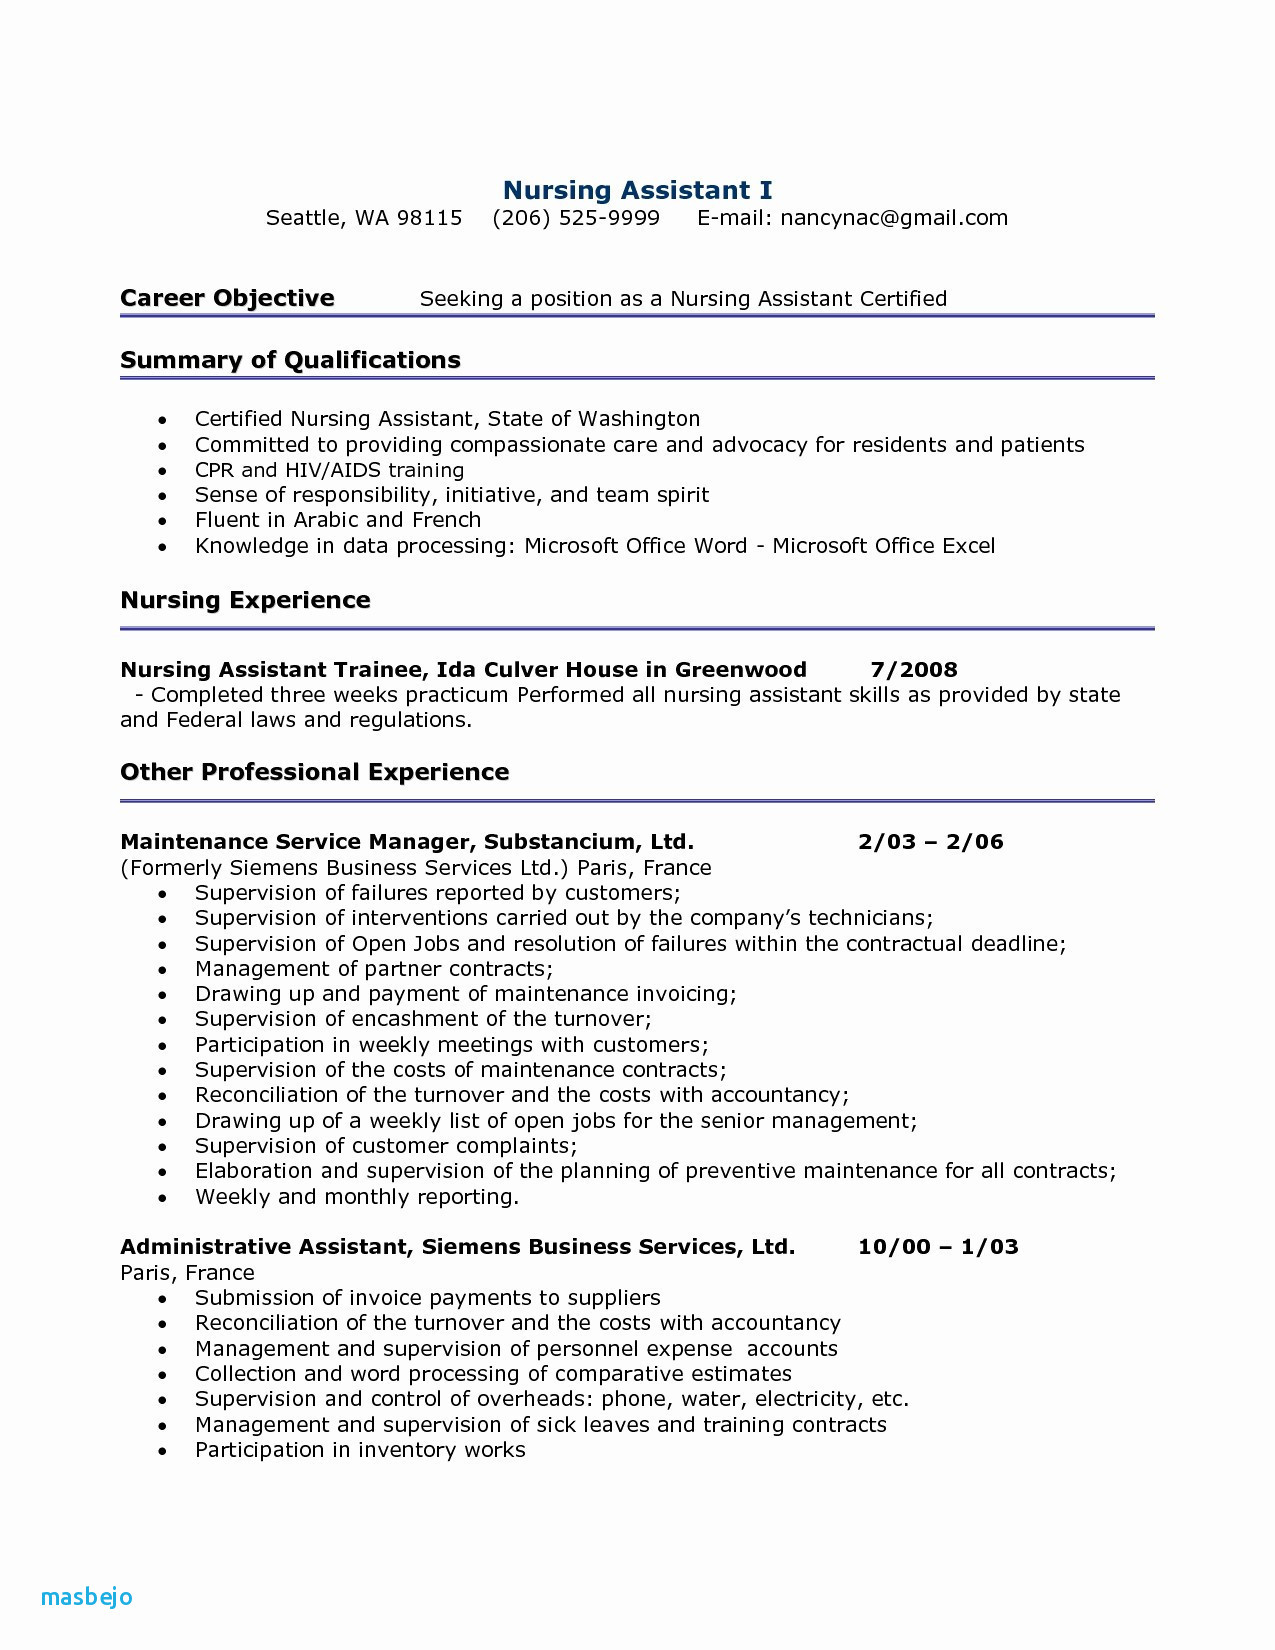 Lifeguard Responsibilities Resume - An Example Resume Resume